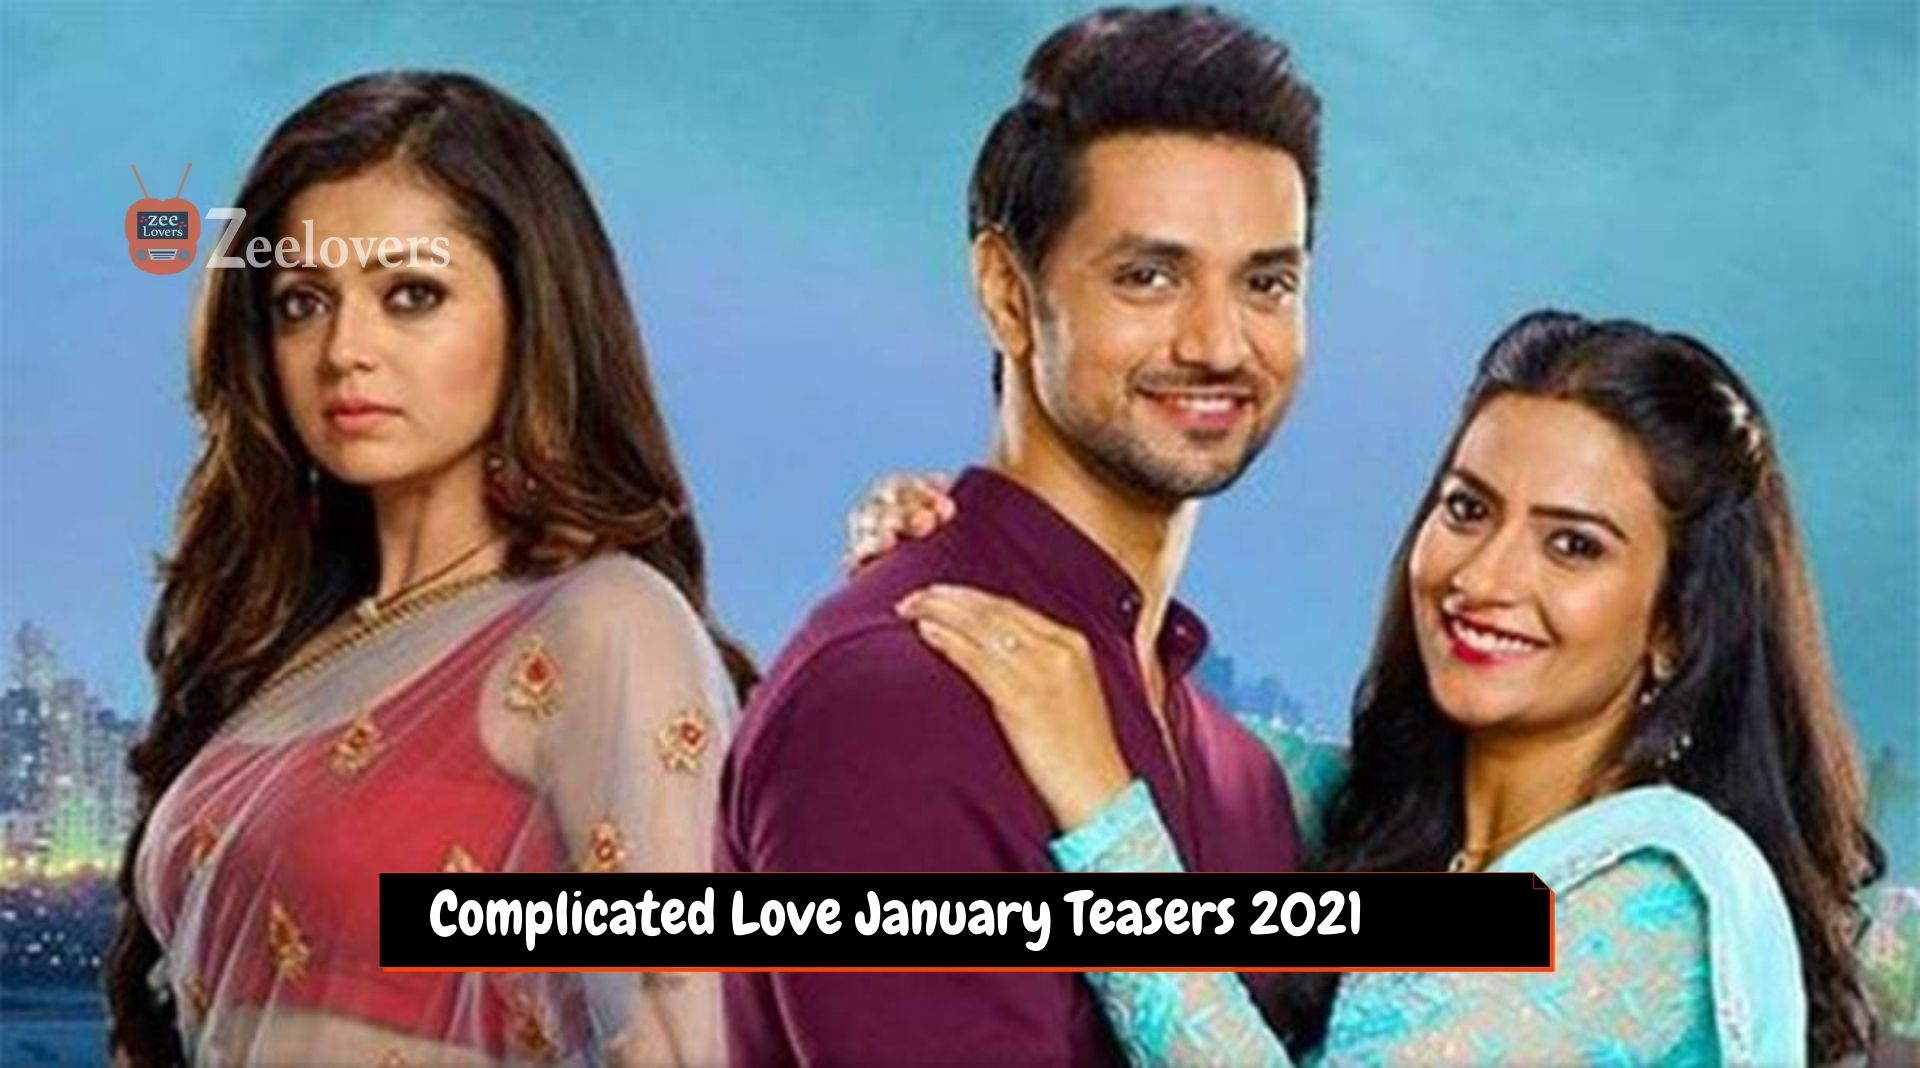 Complicated Love January Teasers 2021